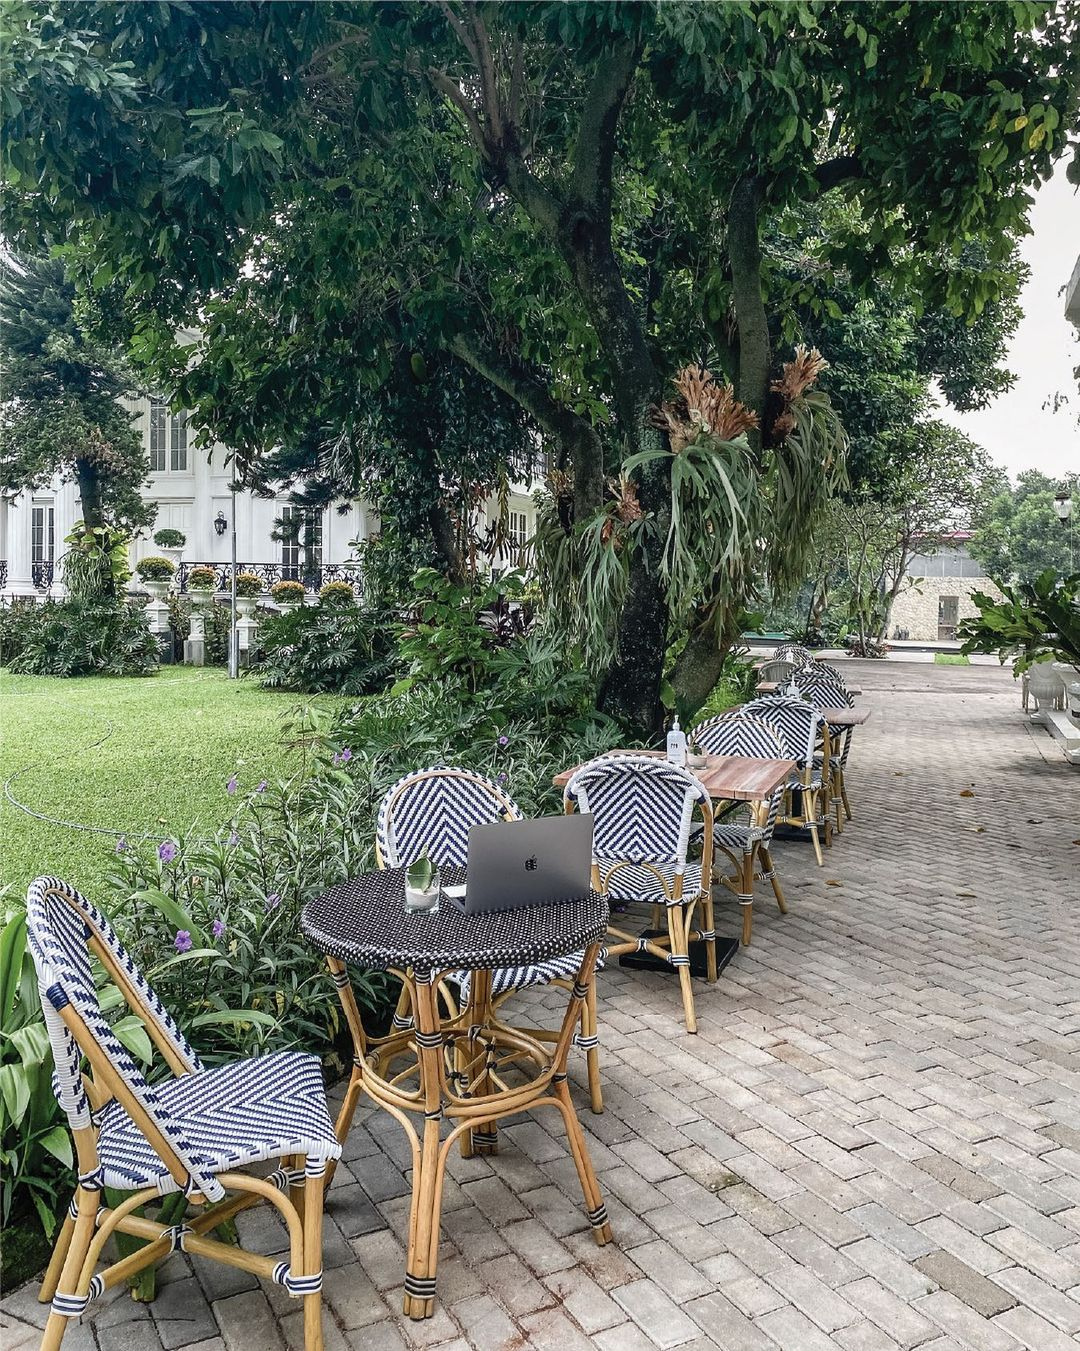 Meja Kursi Outdoor Di The Manor Cafe Image From @themanor Cafe_